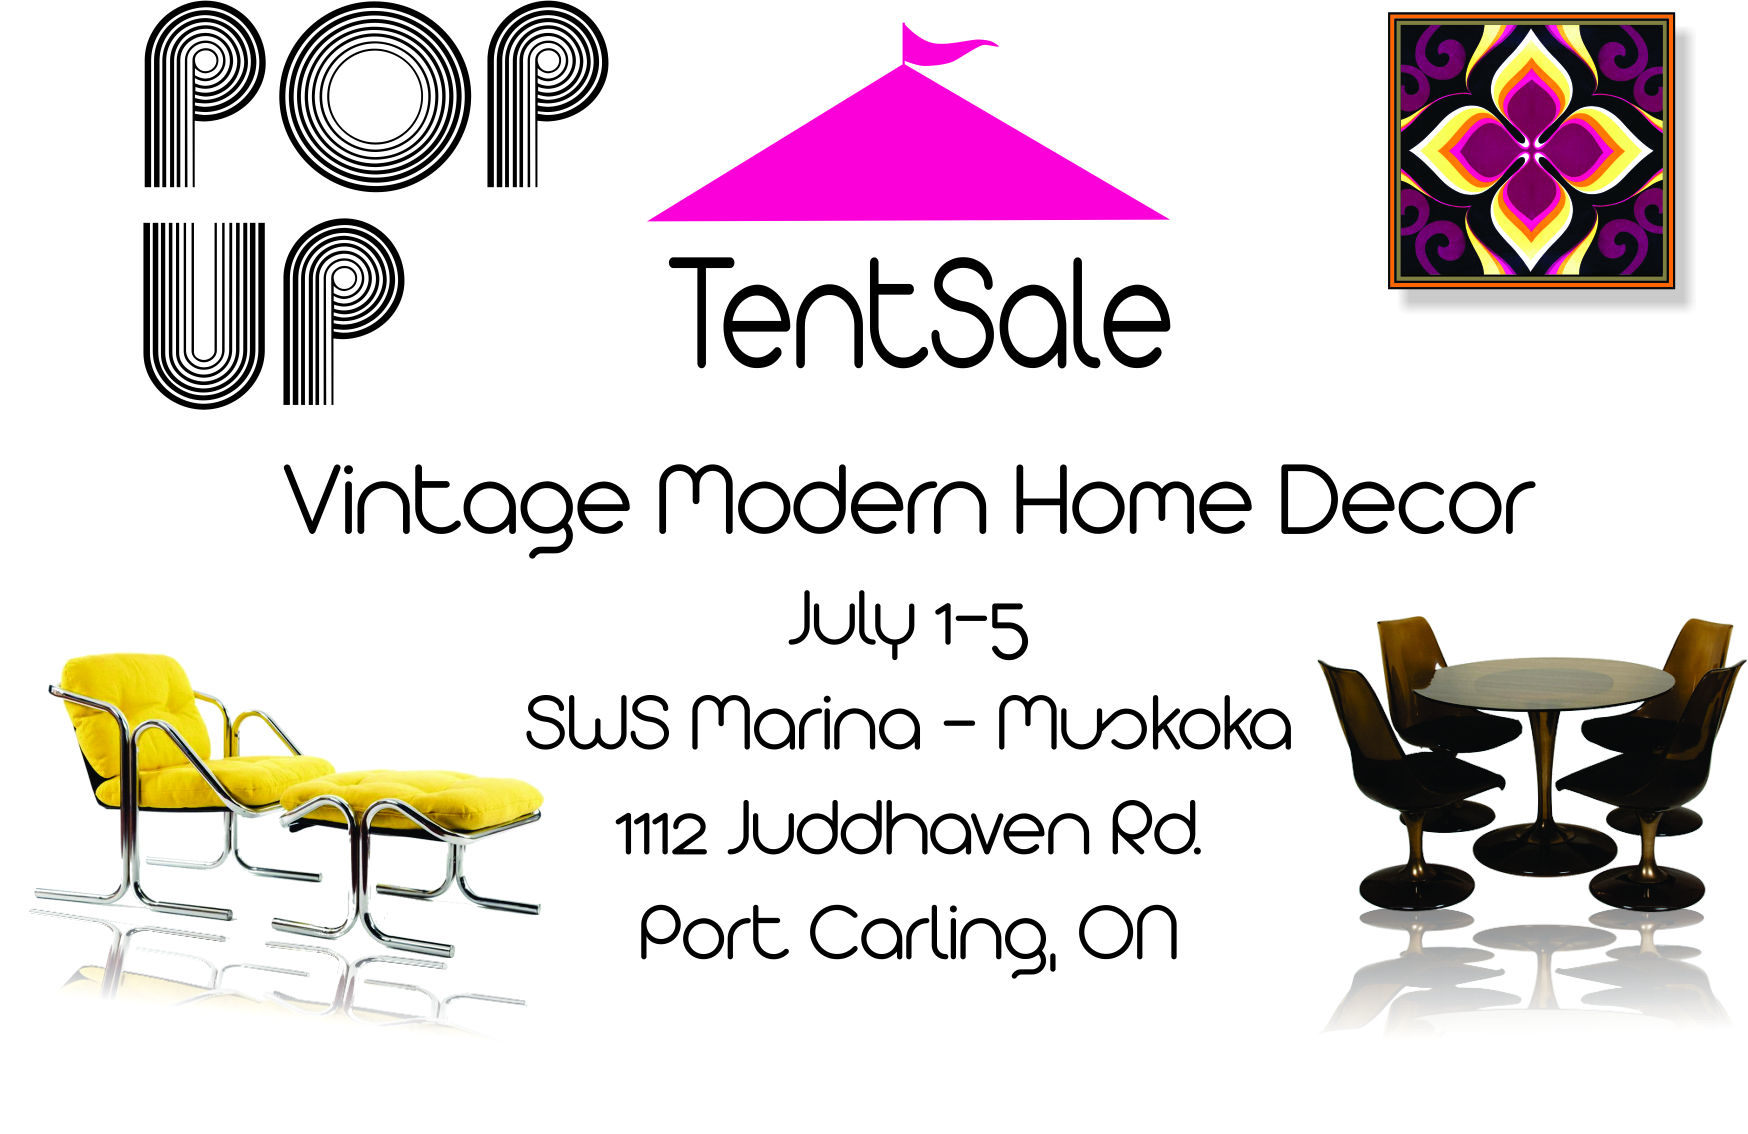 Our first pop up event in Muskoka was held July 1-5, 2015. Stay tuned for details about future sales.                                        Please contact us directly to inquire aboutpieces available for sale.